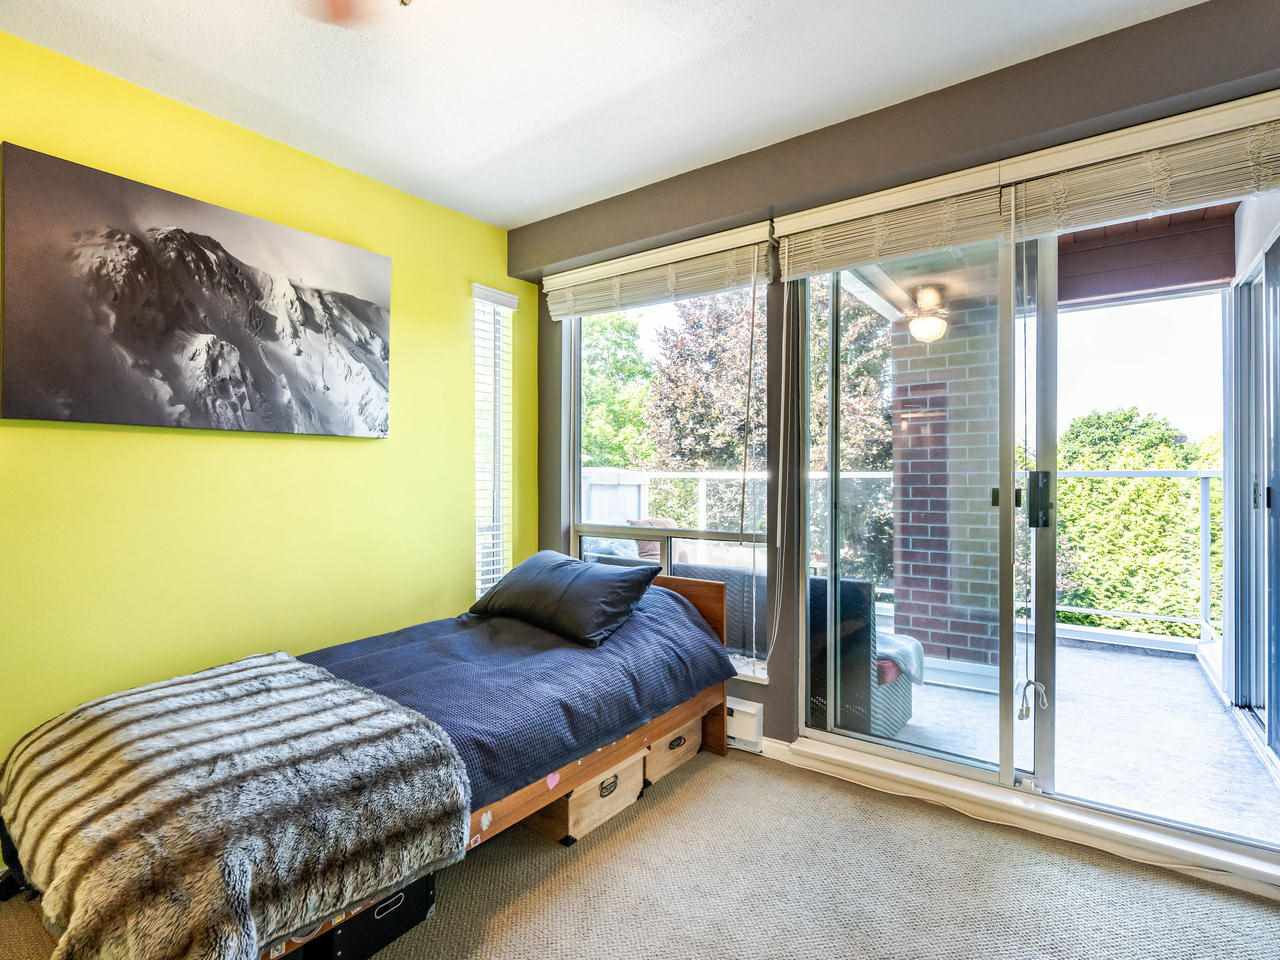 """Photo 30: Photos: 303 2288 W 12TH Avenue in Vancouver: Kitsilano Condo for sale in """"Connaught Point"""" (Vancouver West)  : MLS®# R2494985"""